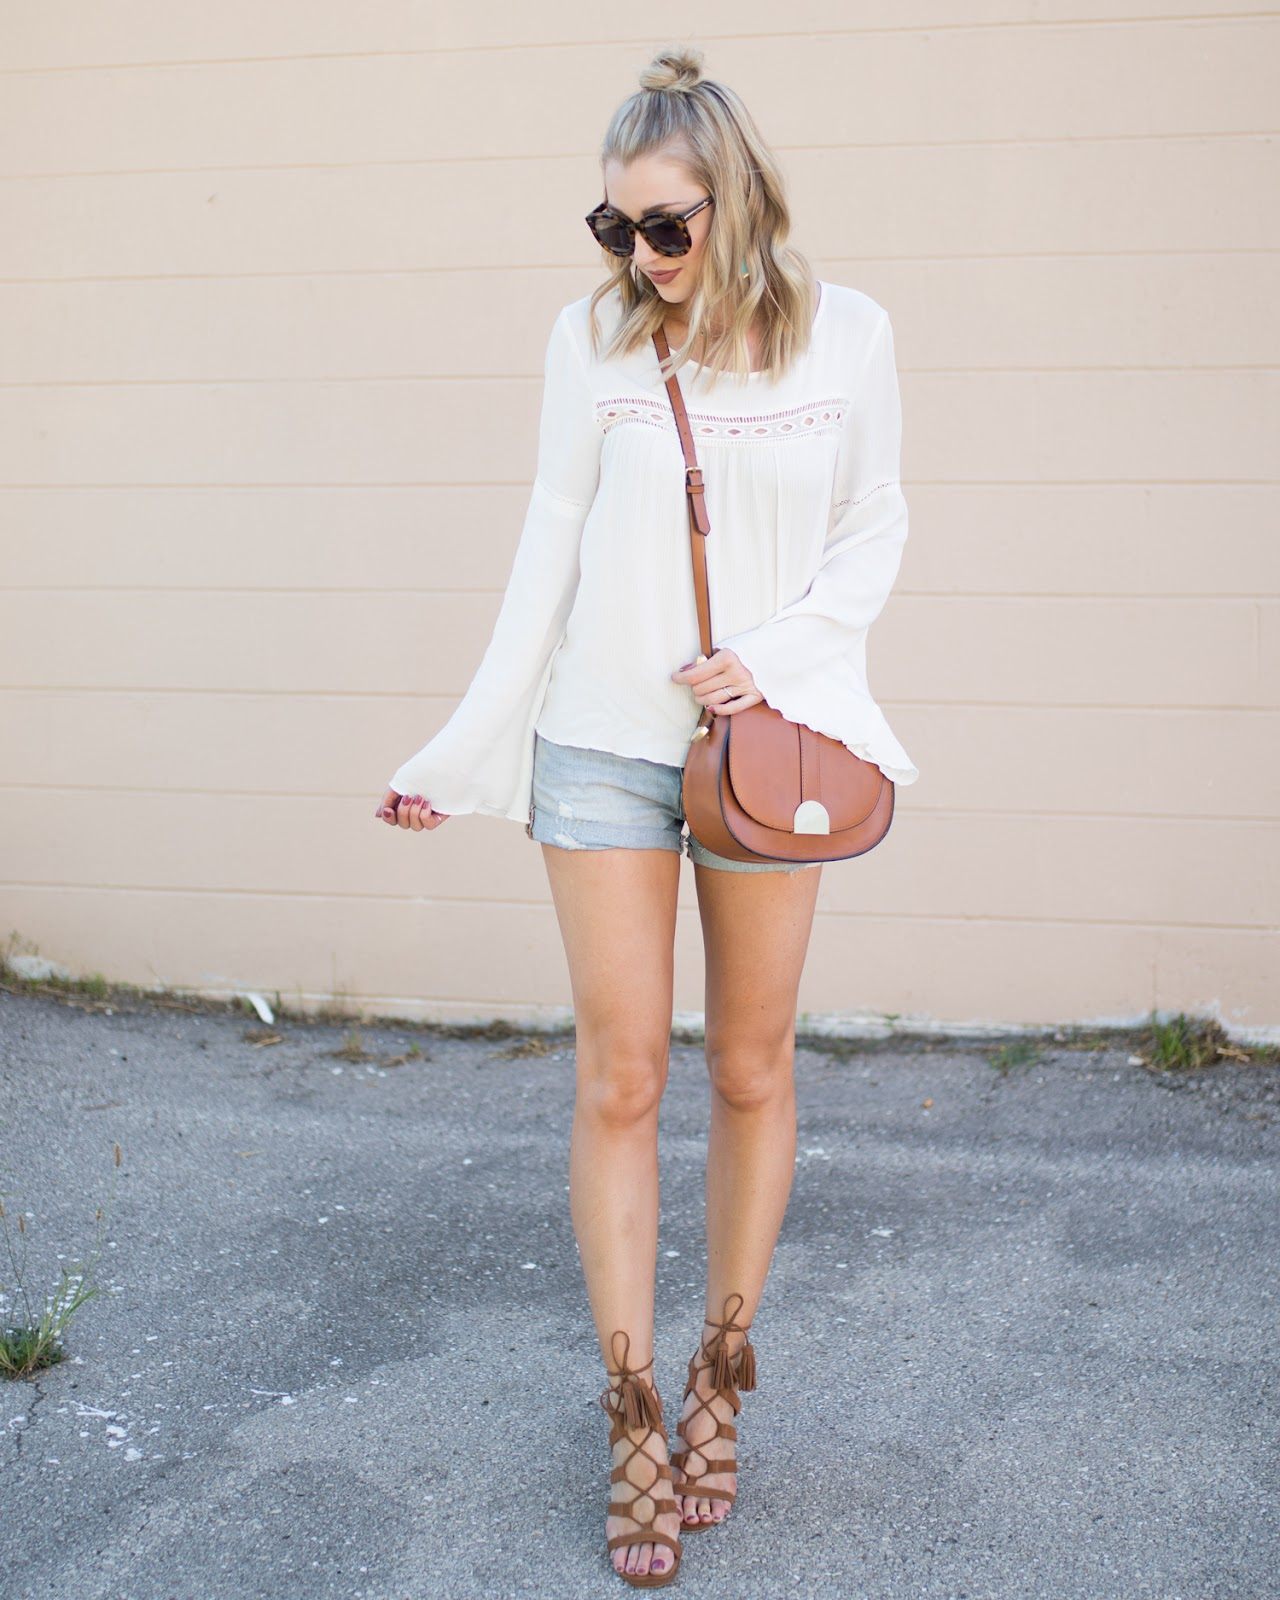 Bell sleeve top with jean shorts